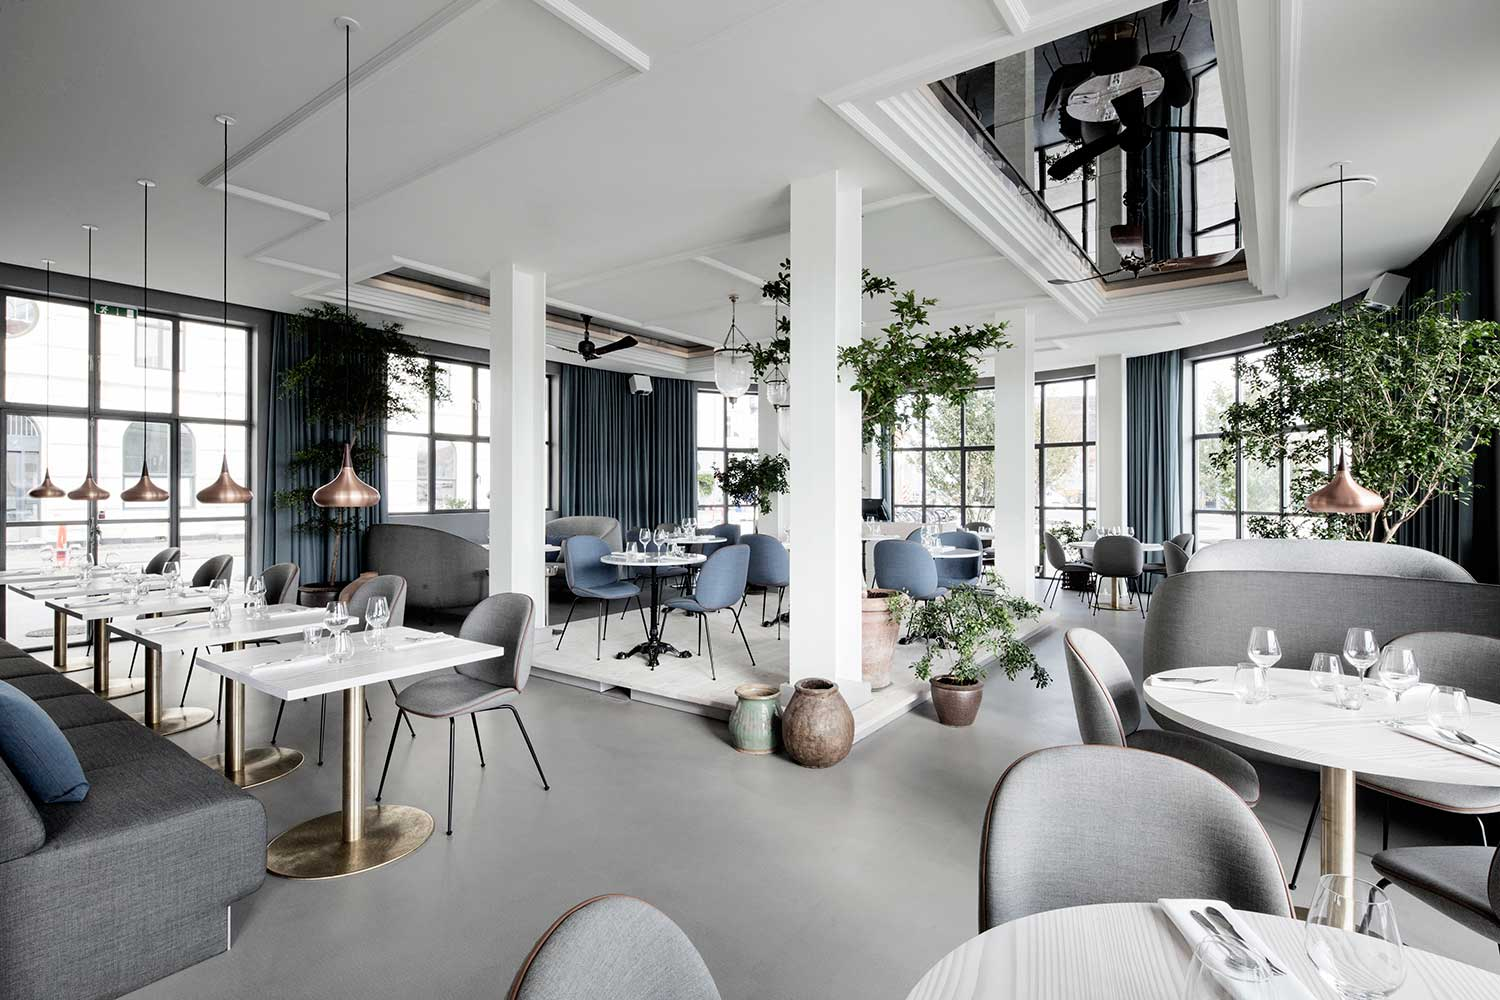 The standard copenhagen by gamfratesi yellowtrace for Interior design agency copenhagen